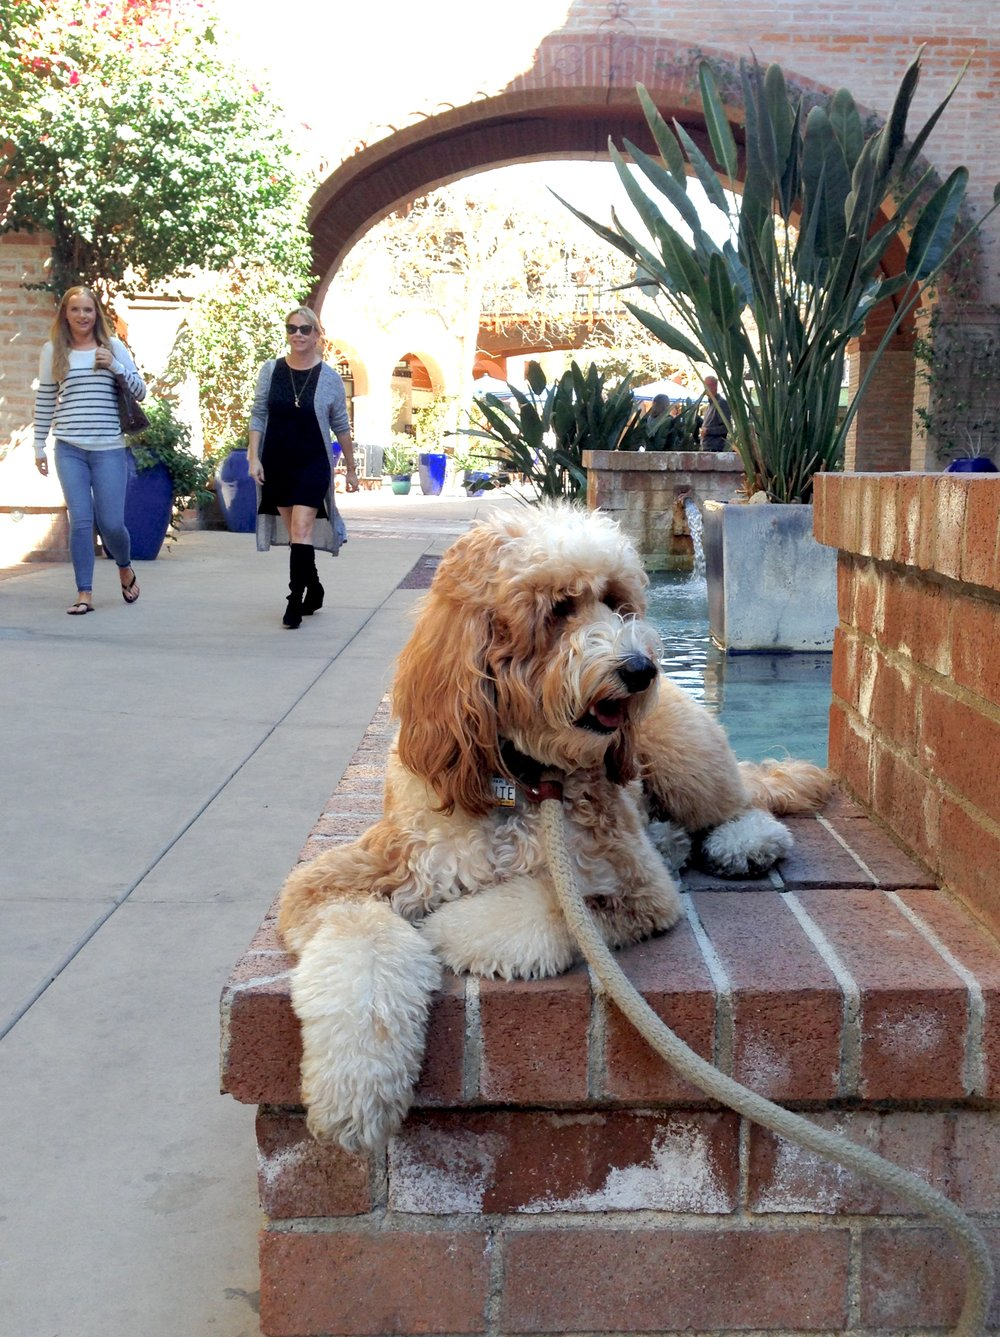 Bernie McSquare ignores friendly shoppers at La Encantada in Tucson, Arizona, while we were practicing a down-stay for our Canine Good Citizen class.